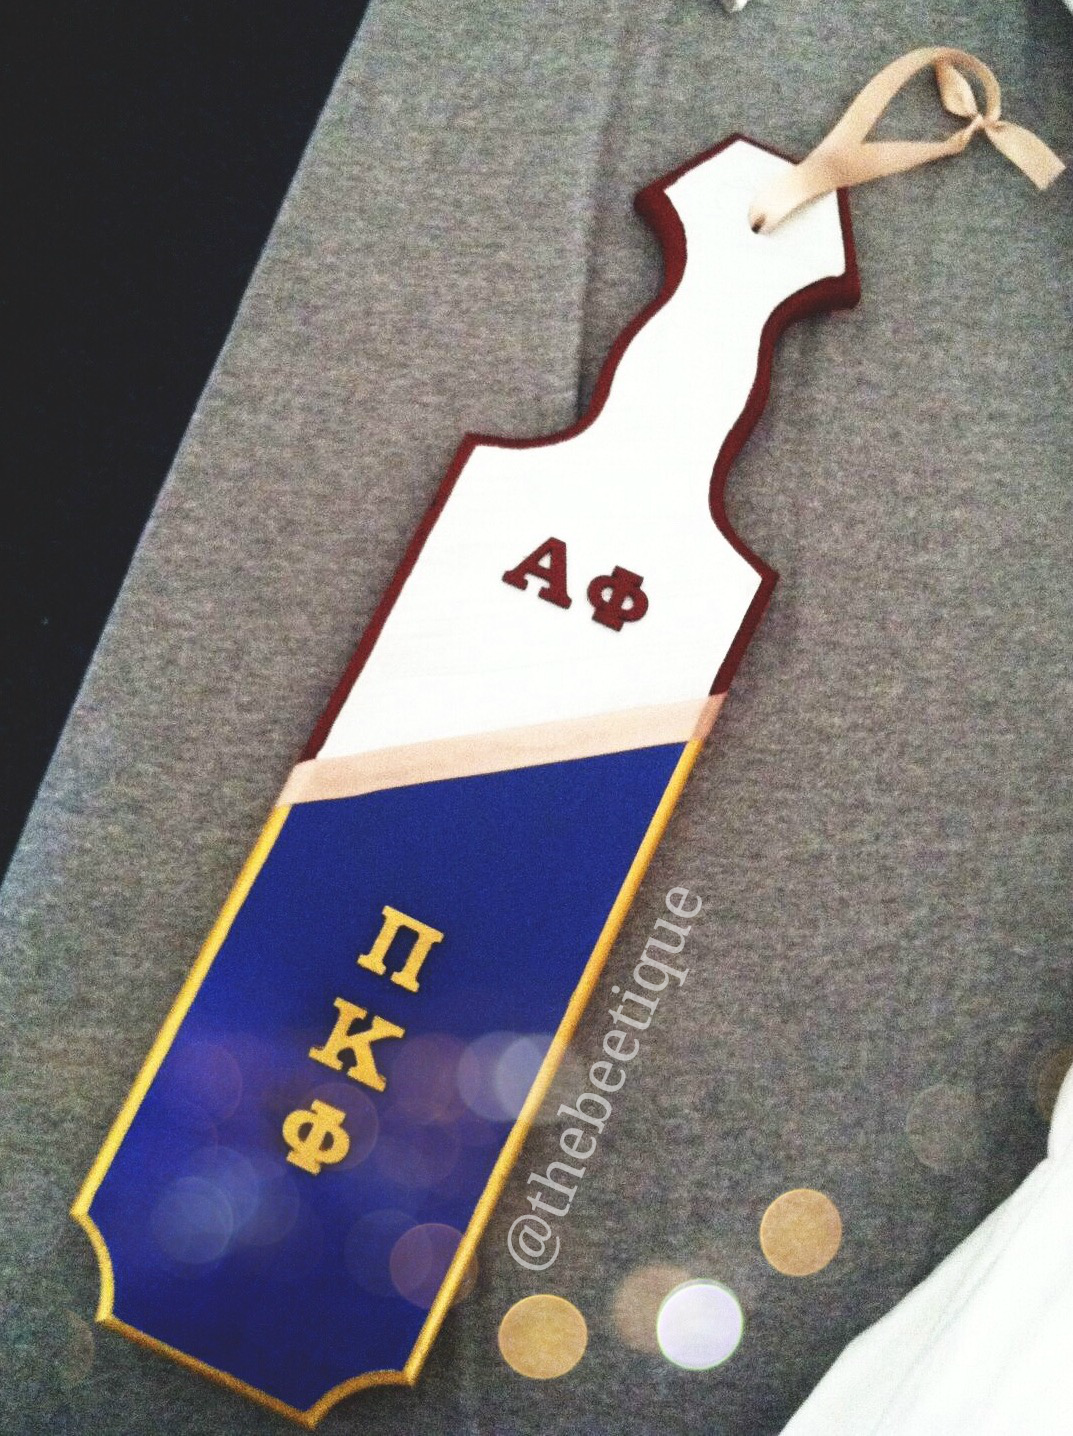 the beetique sorority fraternity paddle